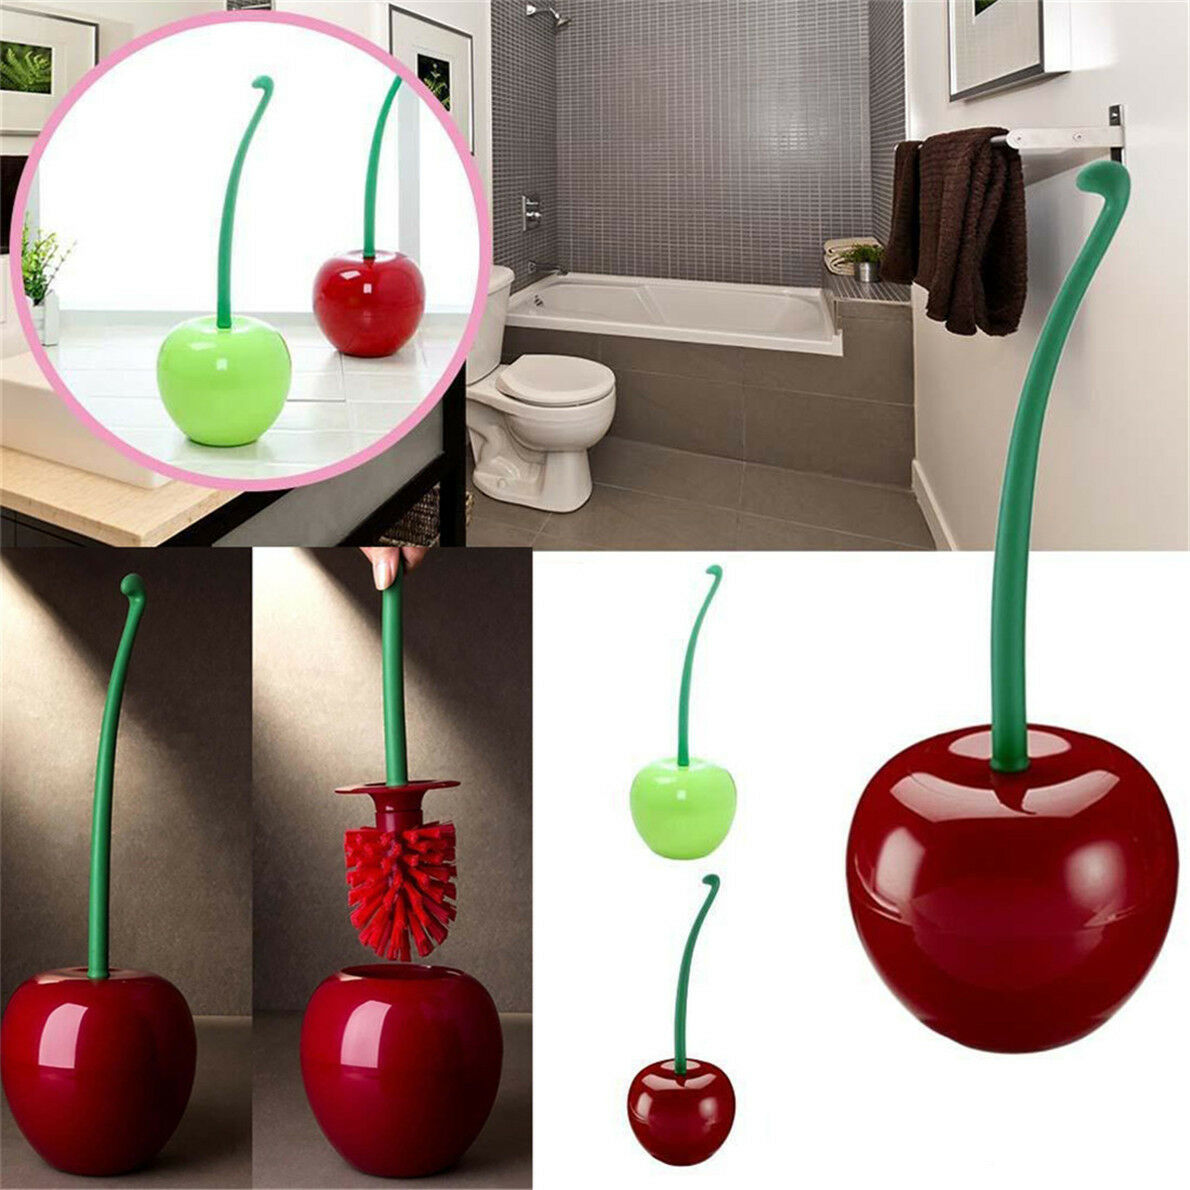 Toilet Set Cleaning Brush Cherry Holder Standing Access Bathroom WC